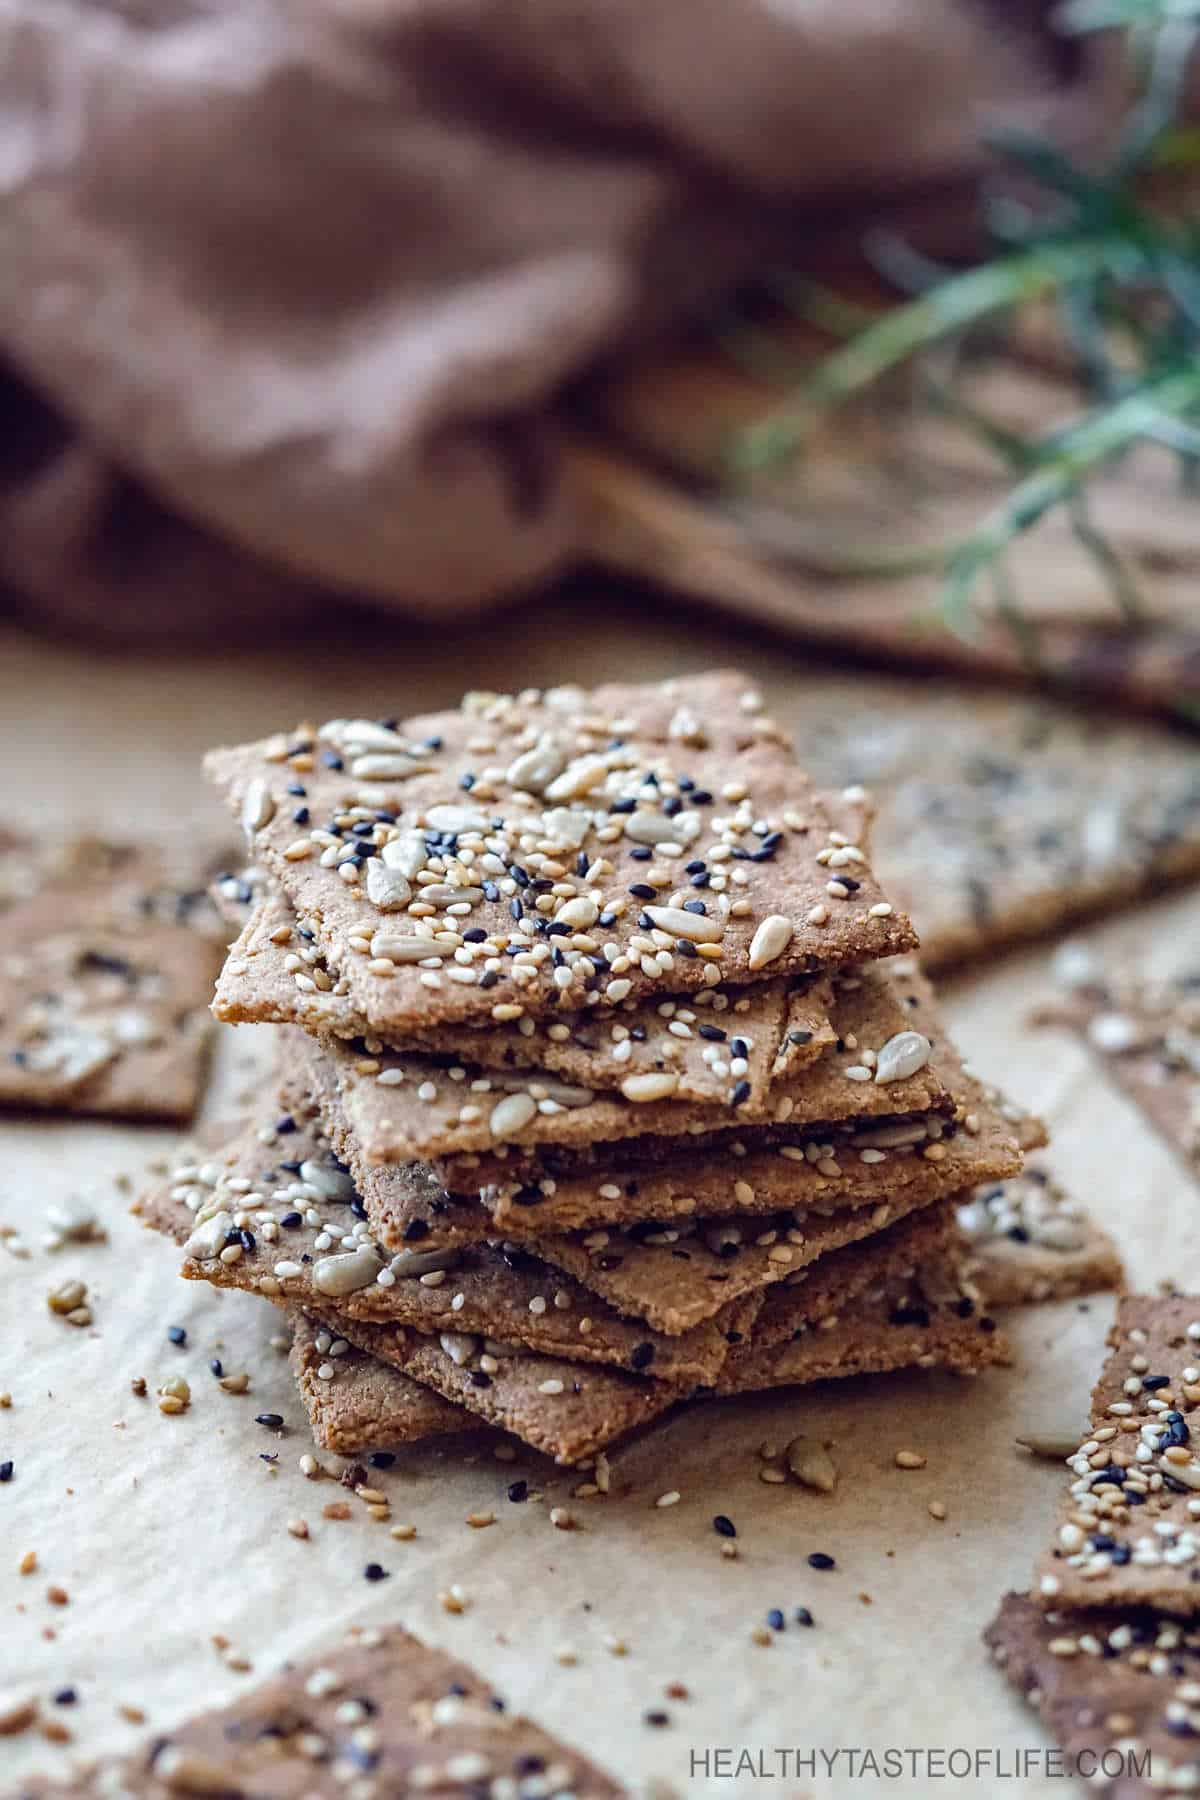 Crispy homemade keto low carb crackers recipe that's also dairy free, gluten free, grain free, nut free, paleo and vegan. Made with flax seeds, sunflower seeds, sesame seeds and a few other healthy ingredients. A low carb snack great for anyone who is following a dairy free keto diet. #keto #lowcarb #crackers